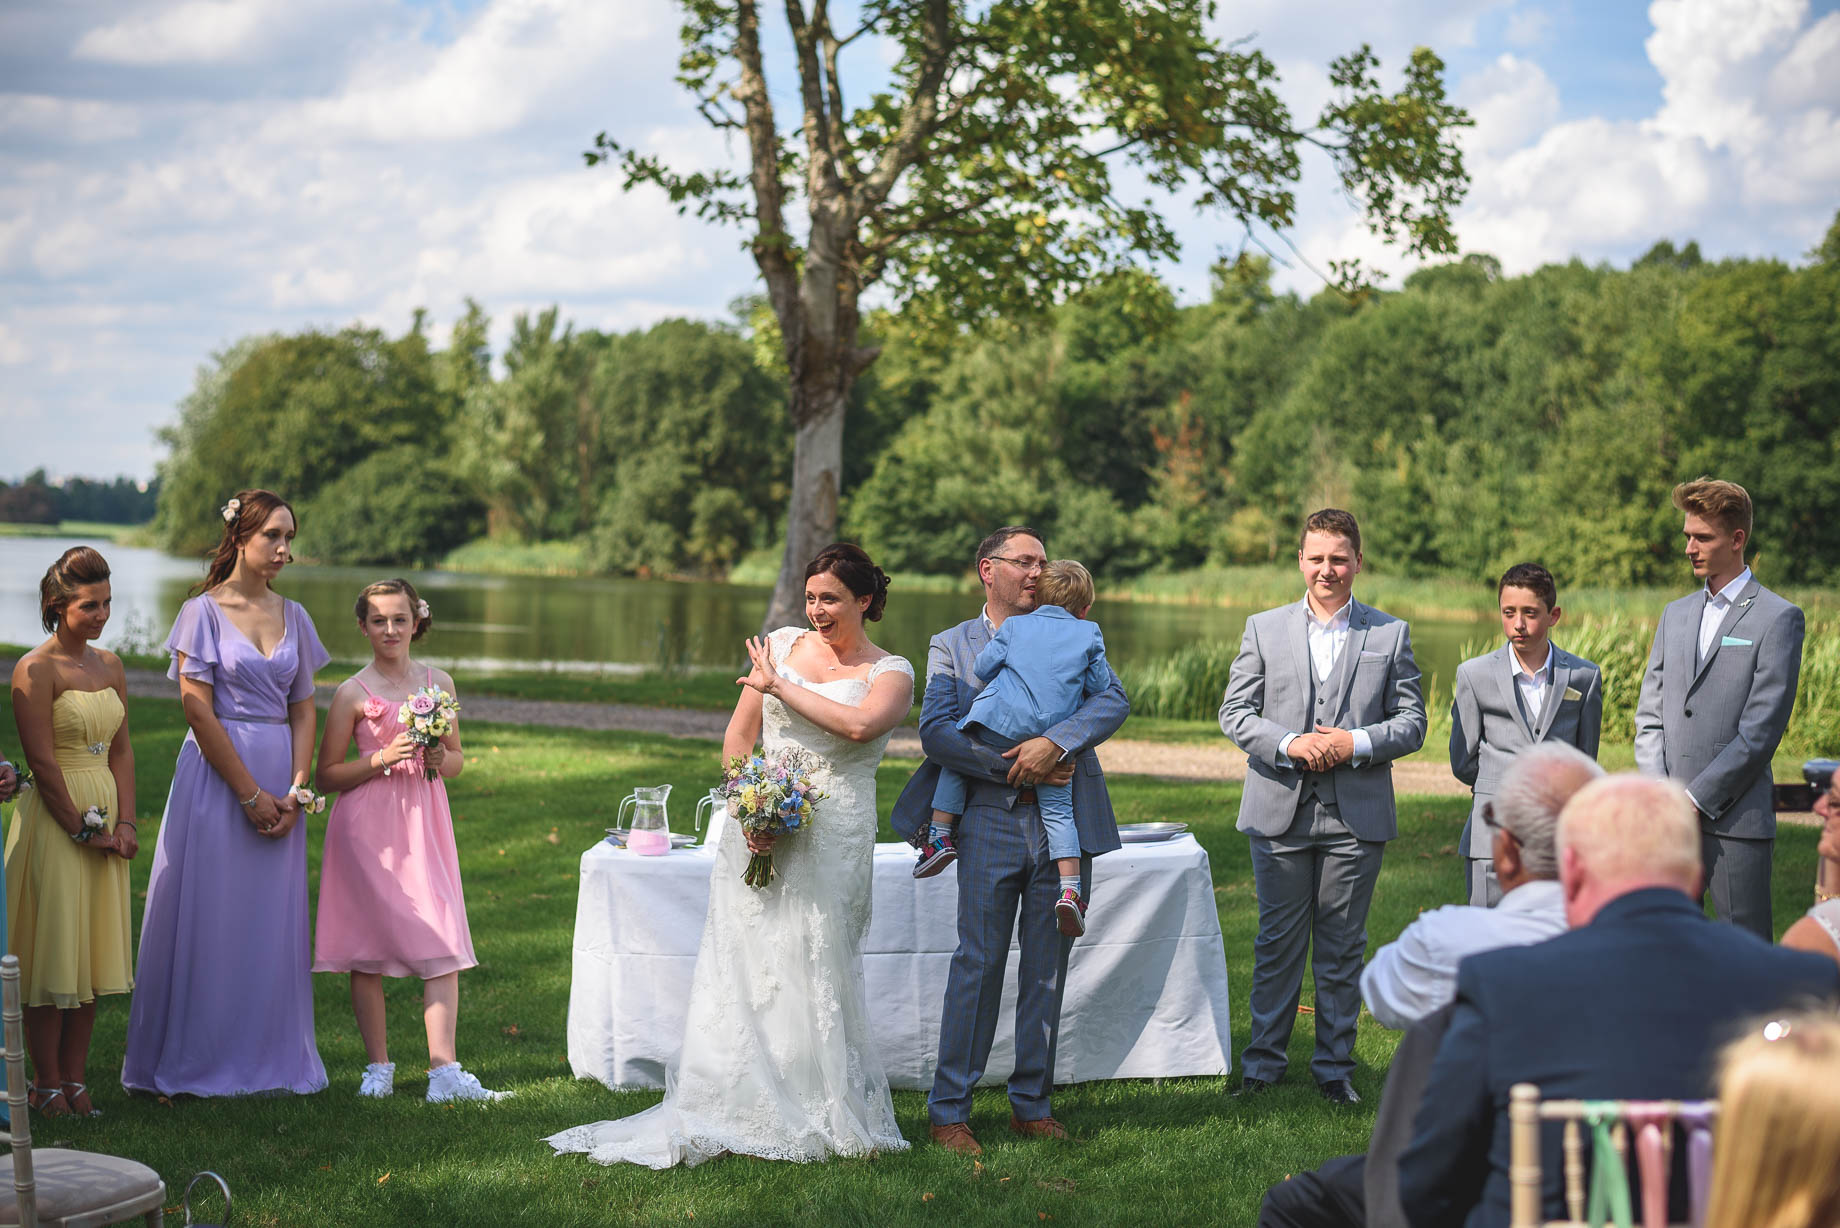 Luton Hoo wedding photography by Guy Collier Photography - Lauren and Gem (58 of 178)